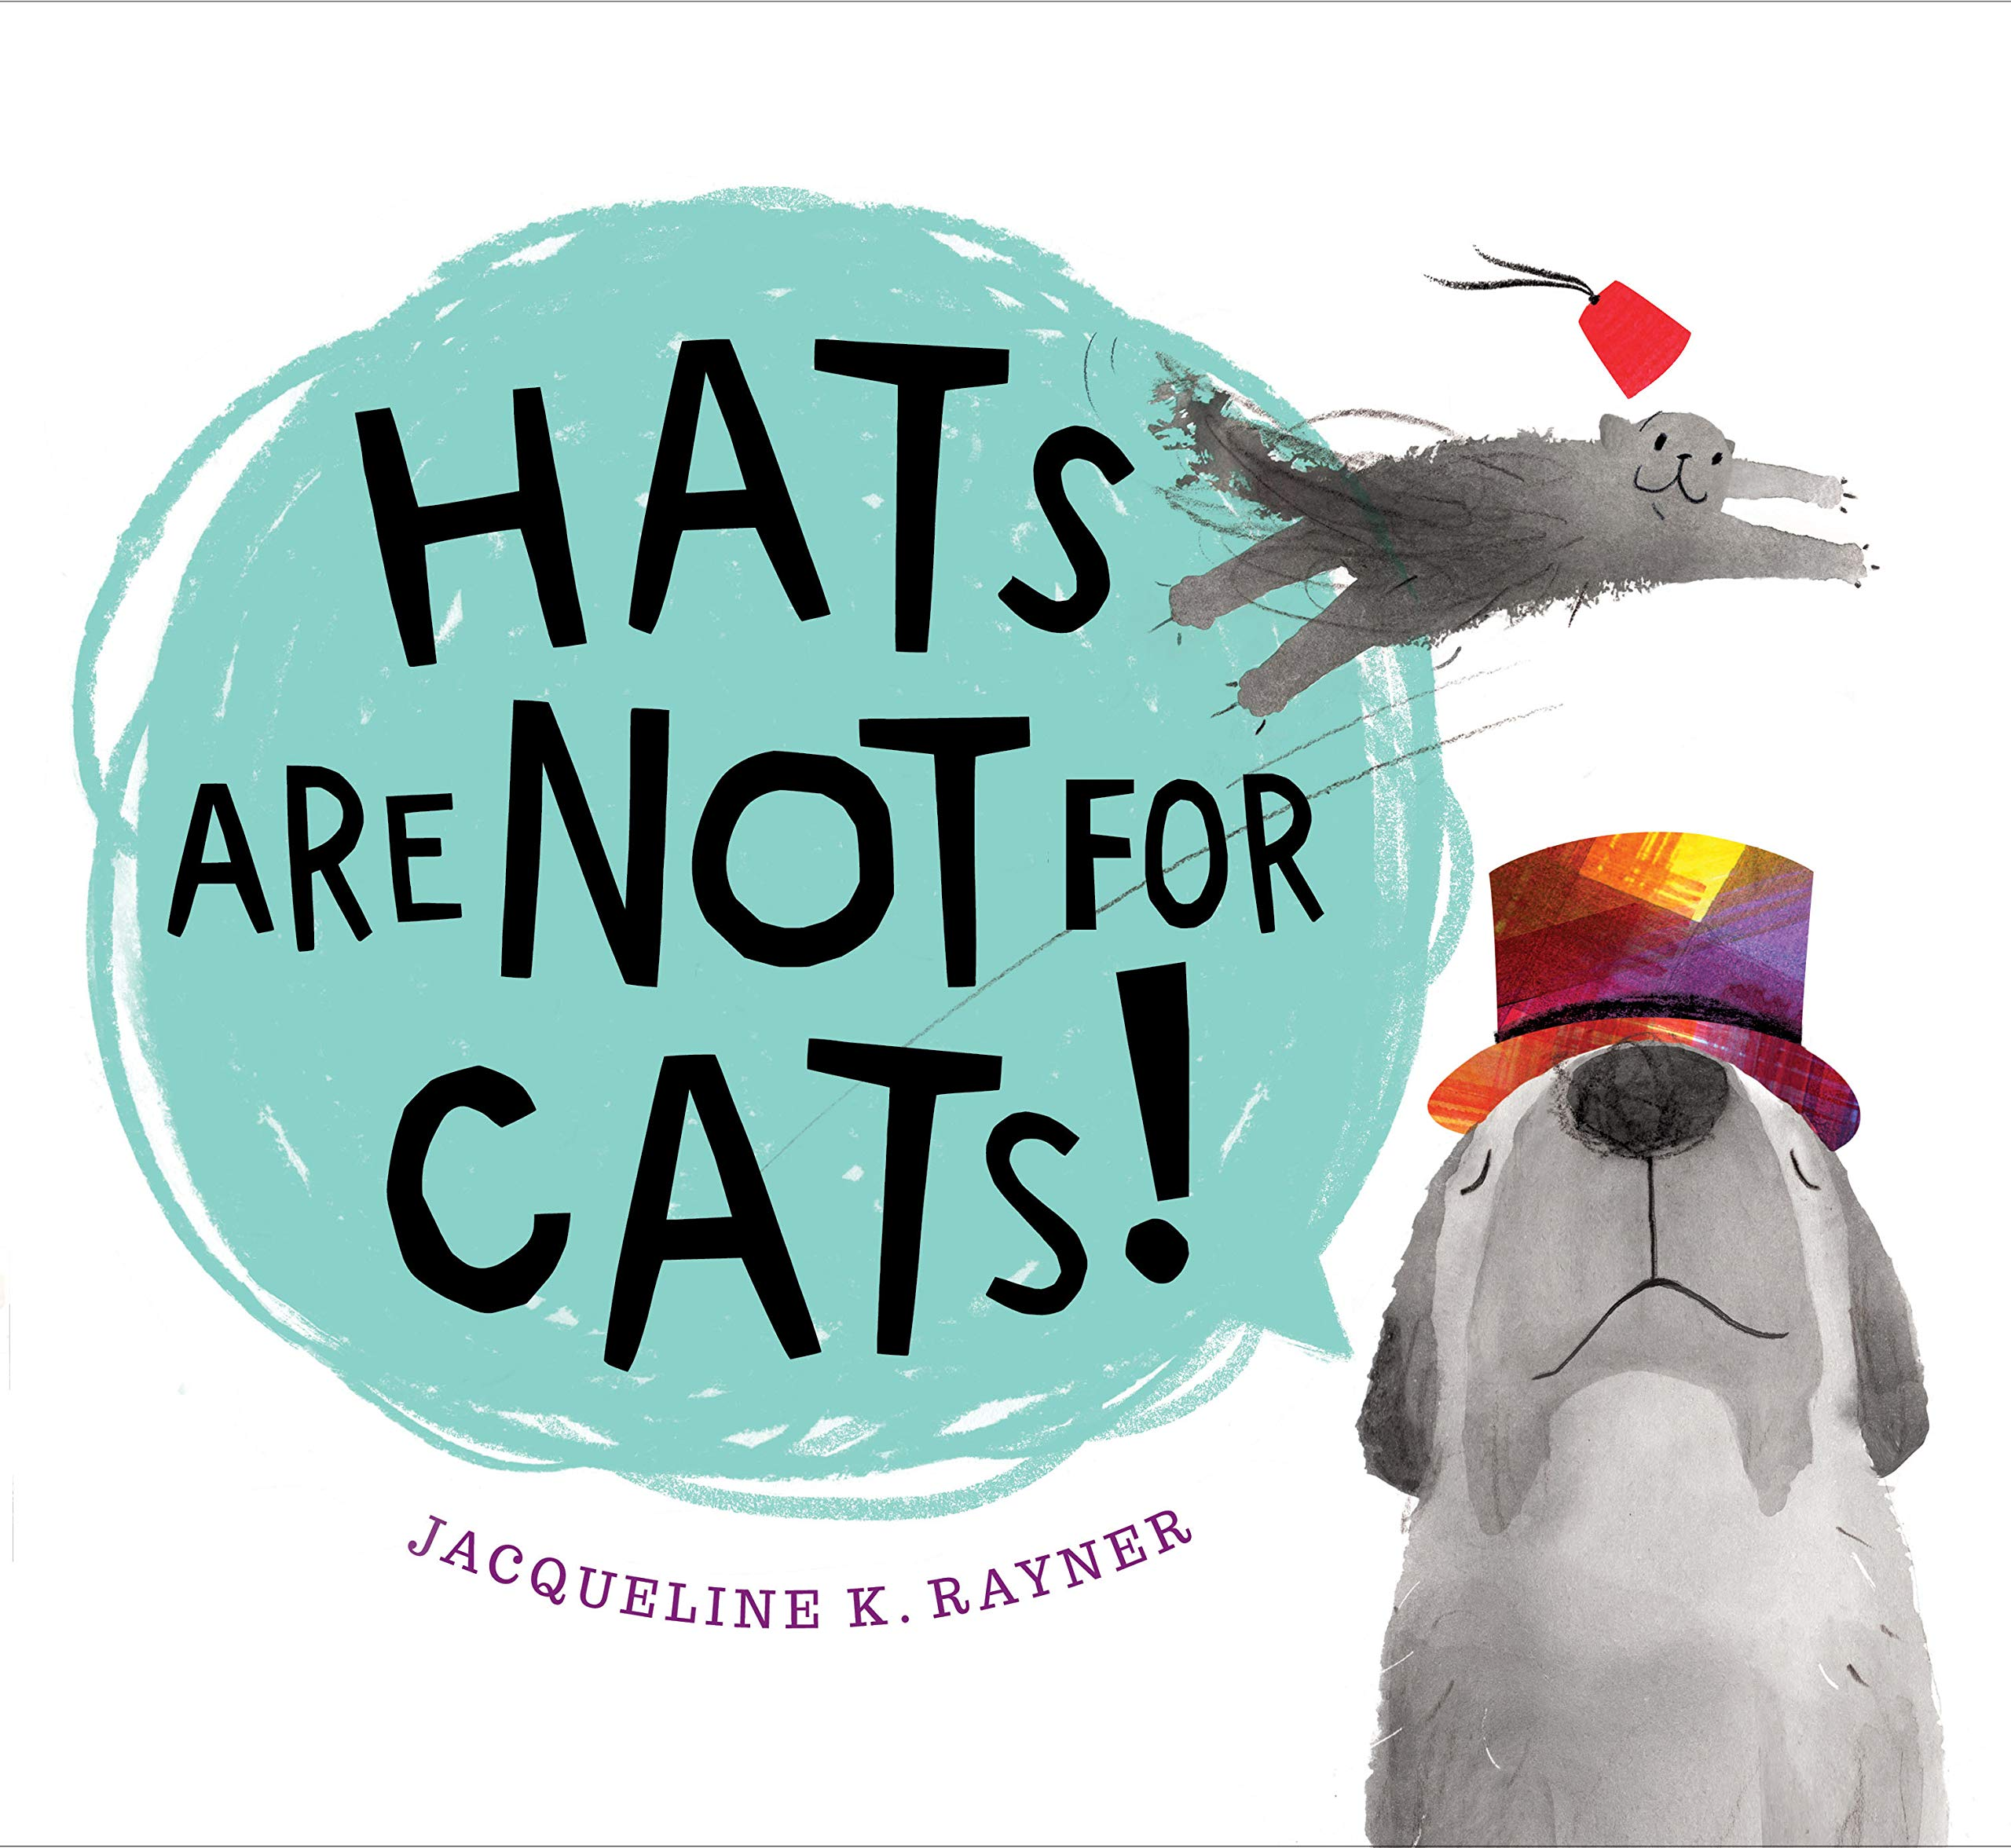 My cat and I talk sh*t about you Cap Cat lover hat!